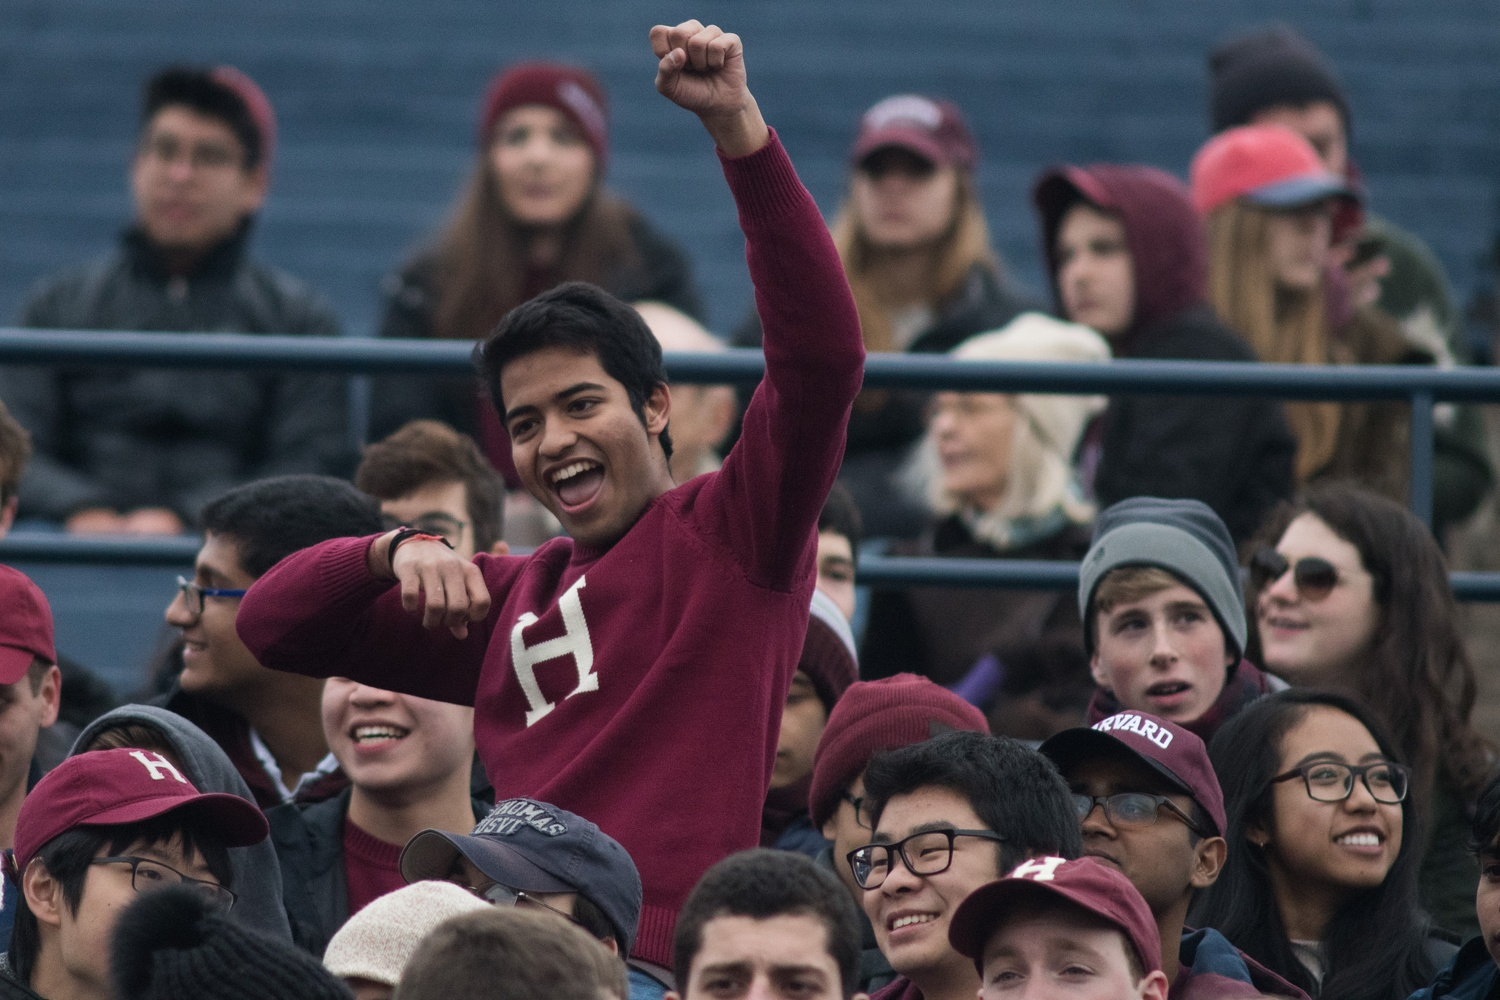 Ajay V. Singh '21 cheers enthusiastically for Harvard early on during the Game.